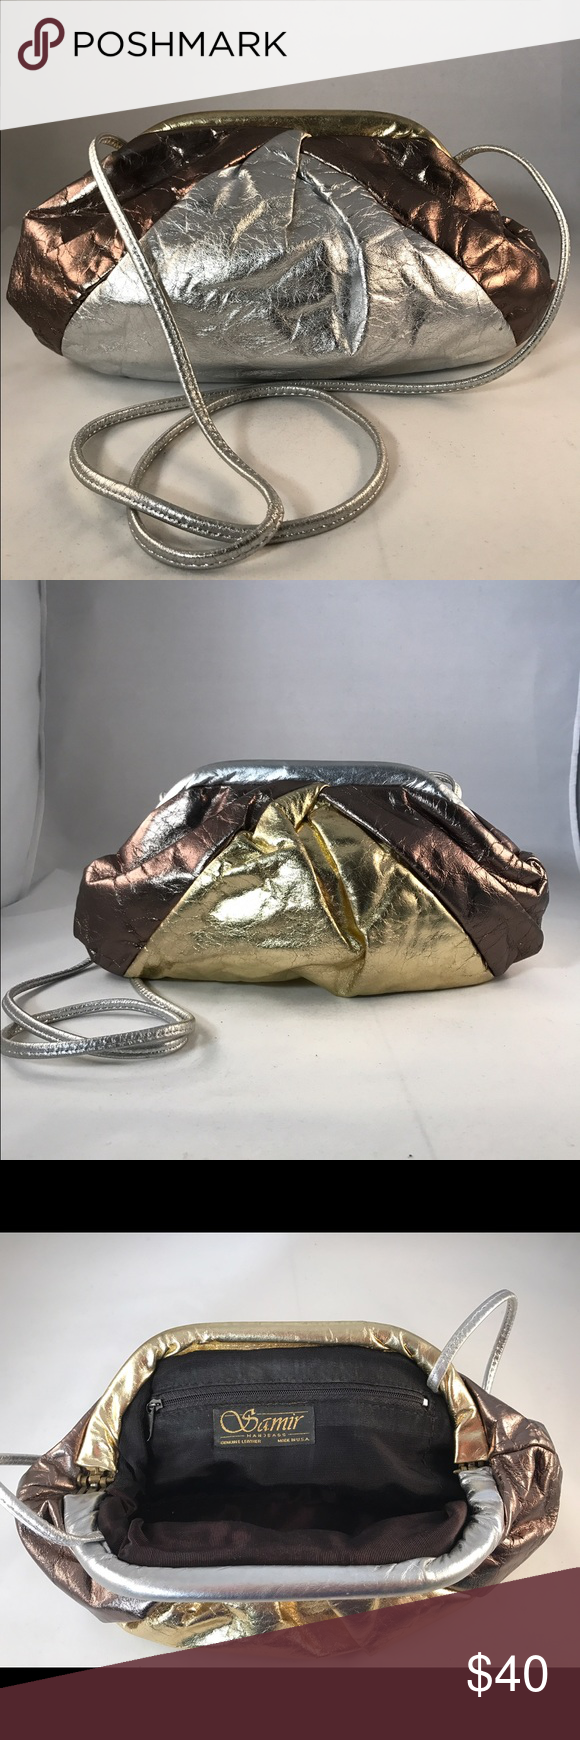 Vintage Samir Handbags Cross Body Purse I call this my disco bag! This purse is amazing! One side is more gold and the other is more silver so whatever metallics you are wearing it will match! I love the cross body strap, but you can easily fold it inside and use this as a large clutch instead. Bag opens easily because of the hinge inside (reminds me of a clamshell purse). This bag is totally on trend and ready to go to a new home! Samir Handbags Bags Crossbody Bags